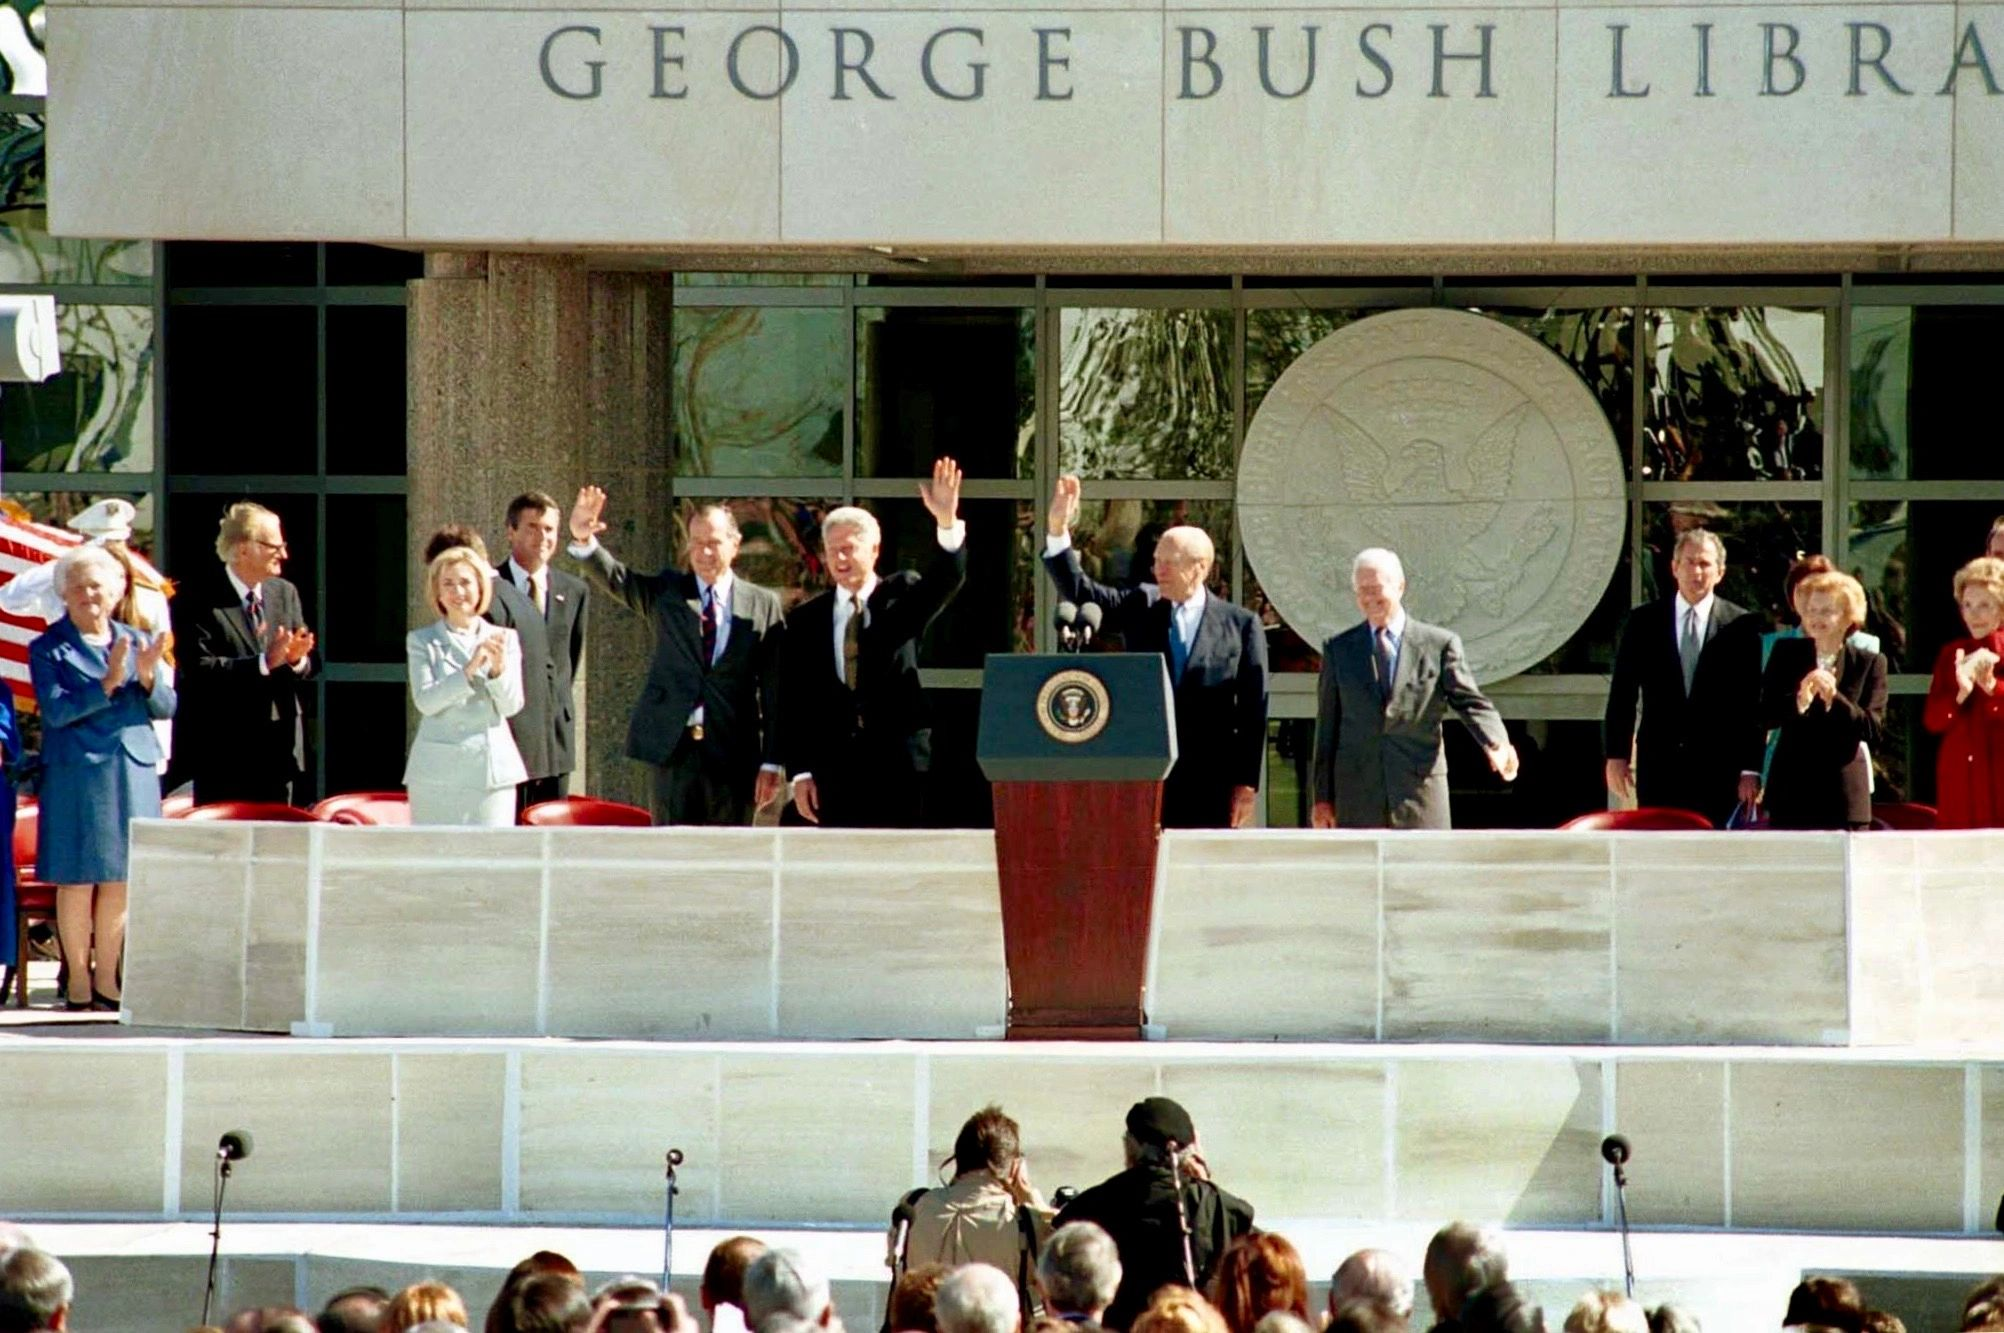 Farris Rookstool, III, George H. W. Bush Presidential Library, Photo by Michael Mulvey, DMN ©1997